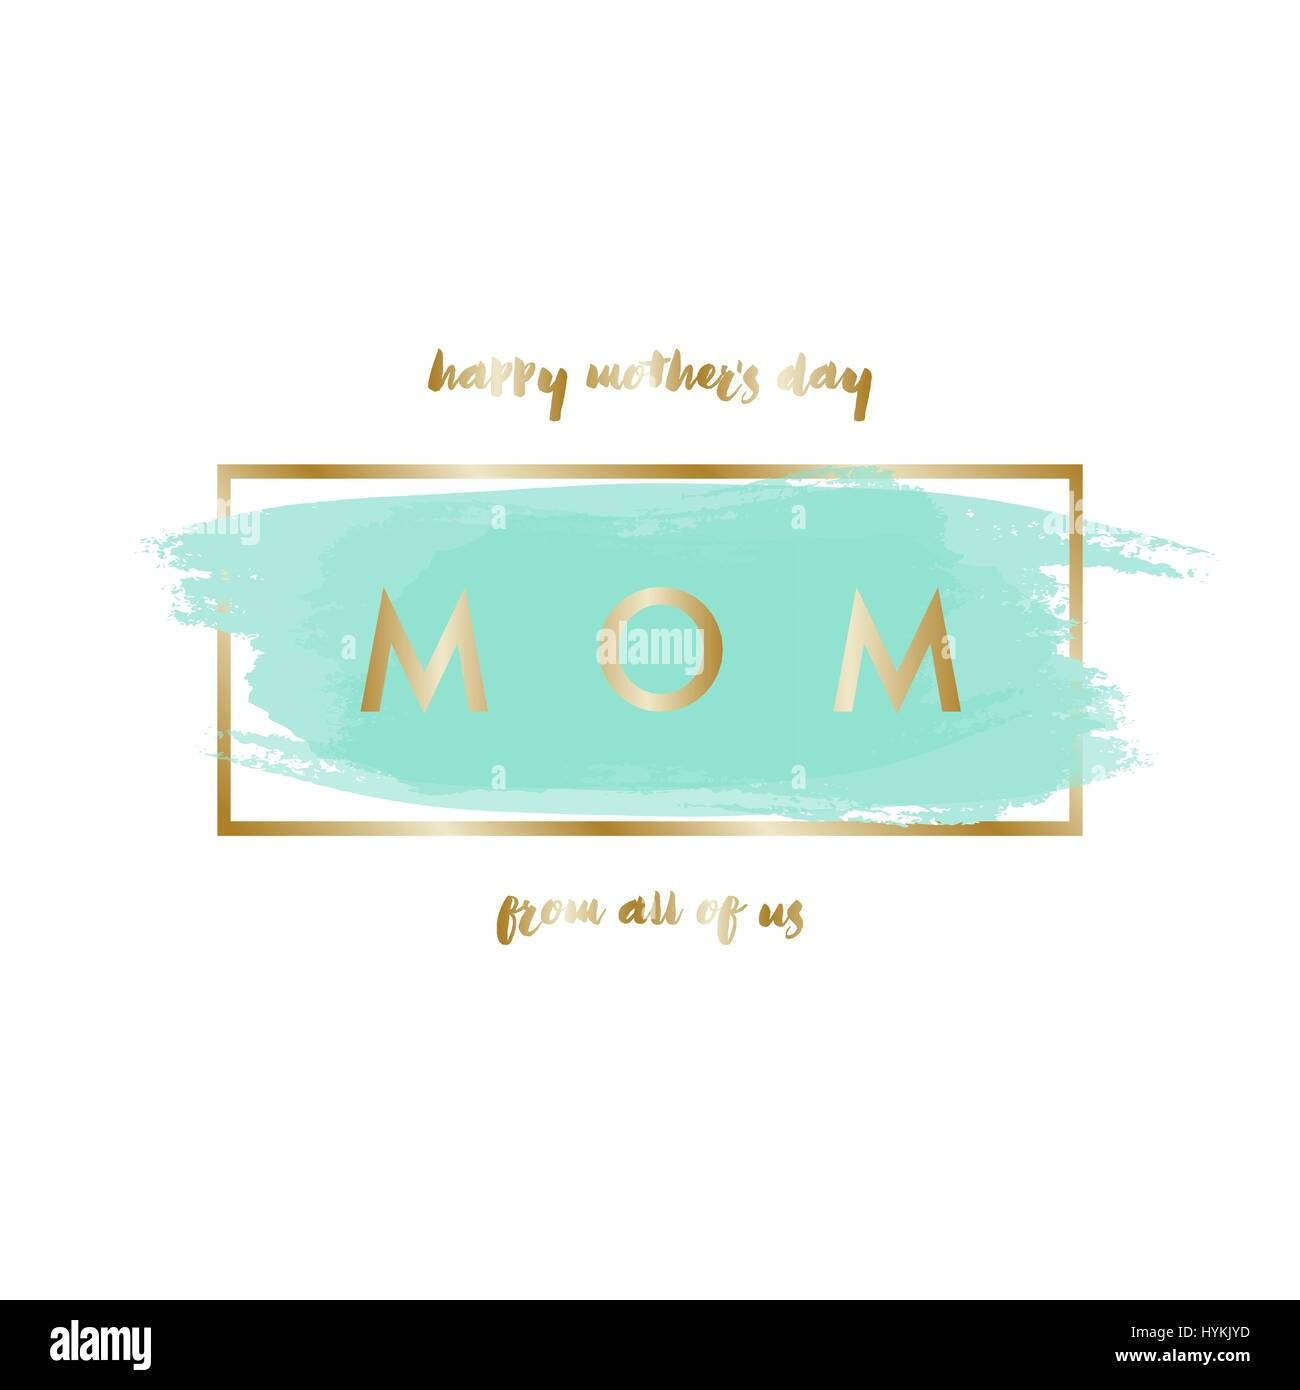 Mothers Day Greeting Card Design With Gold Letters Message And